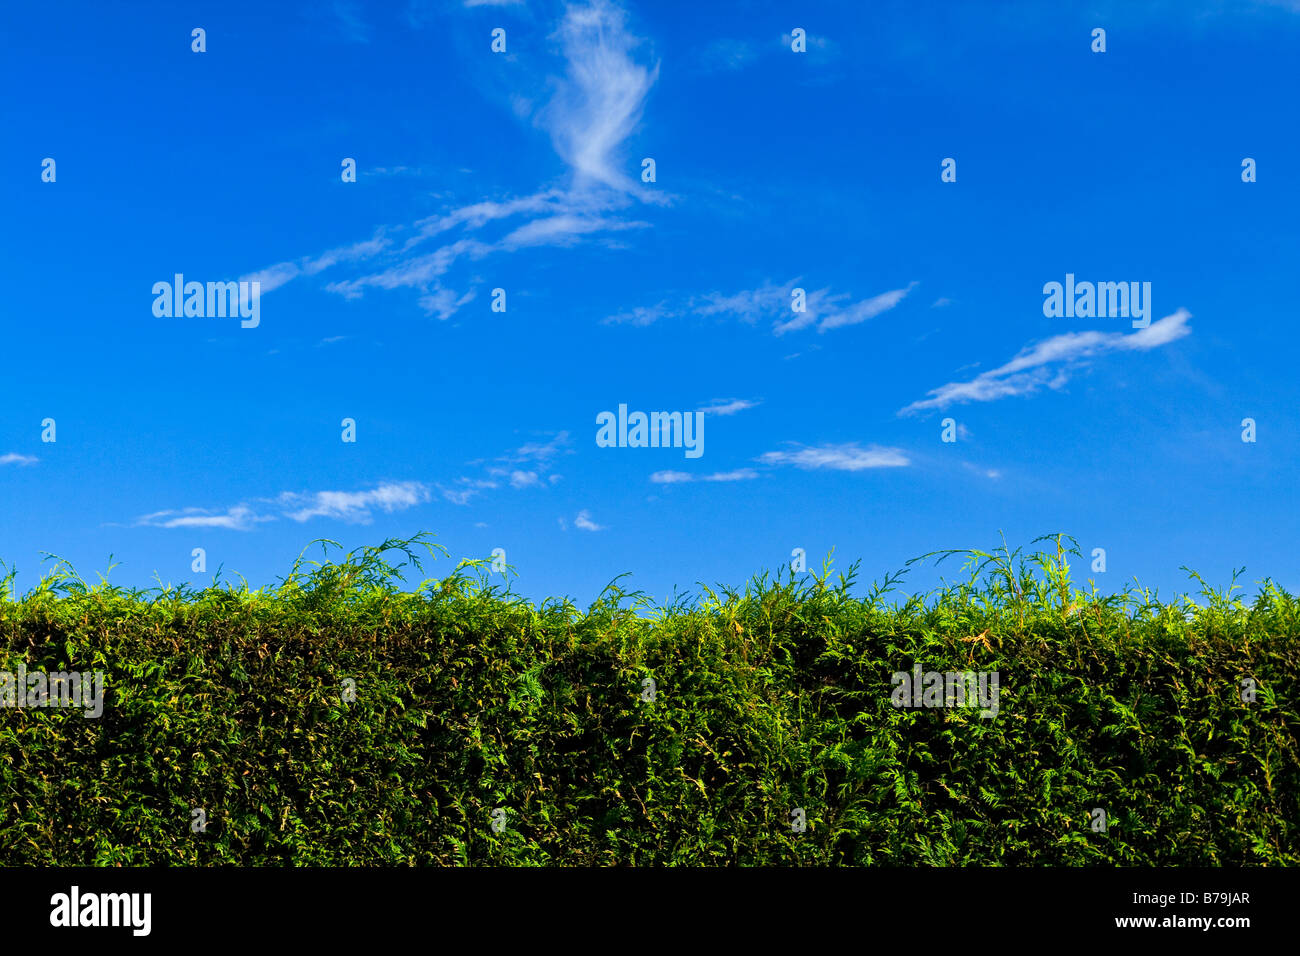 Leylandii hedge shrub with blue sky and cloud behind - Stock Image